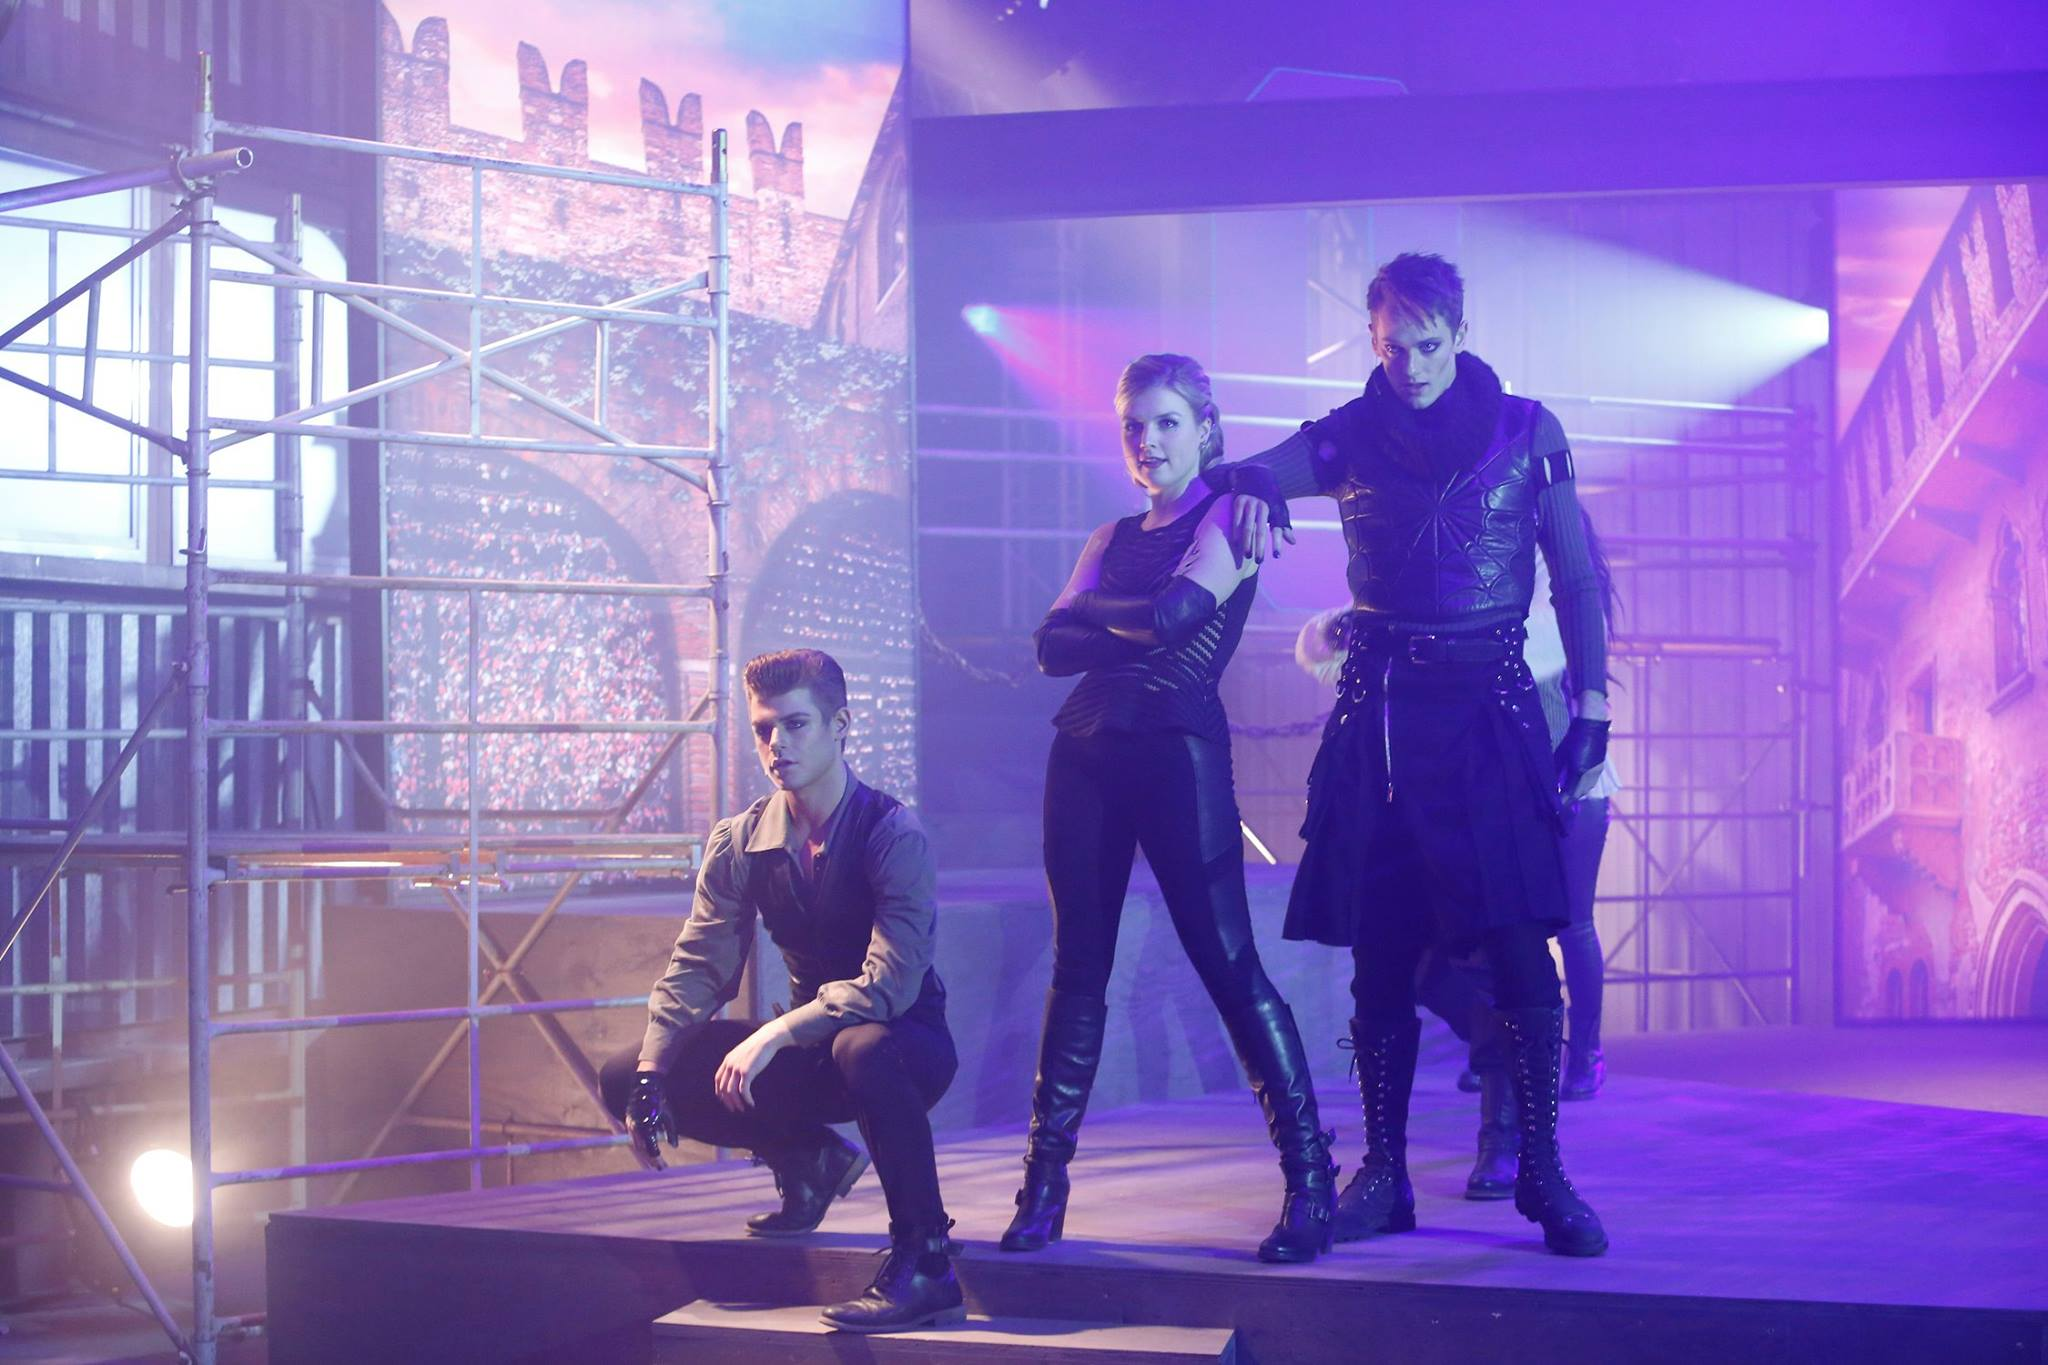 Tv-commercials-the-fosters-asher-entertainment-tv-show-dance-dancers-posing-fight-choreo-stage-set-promo